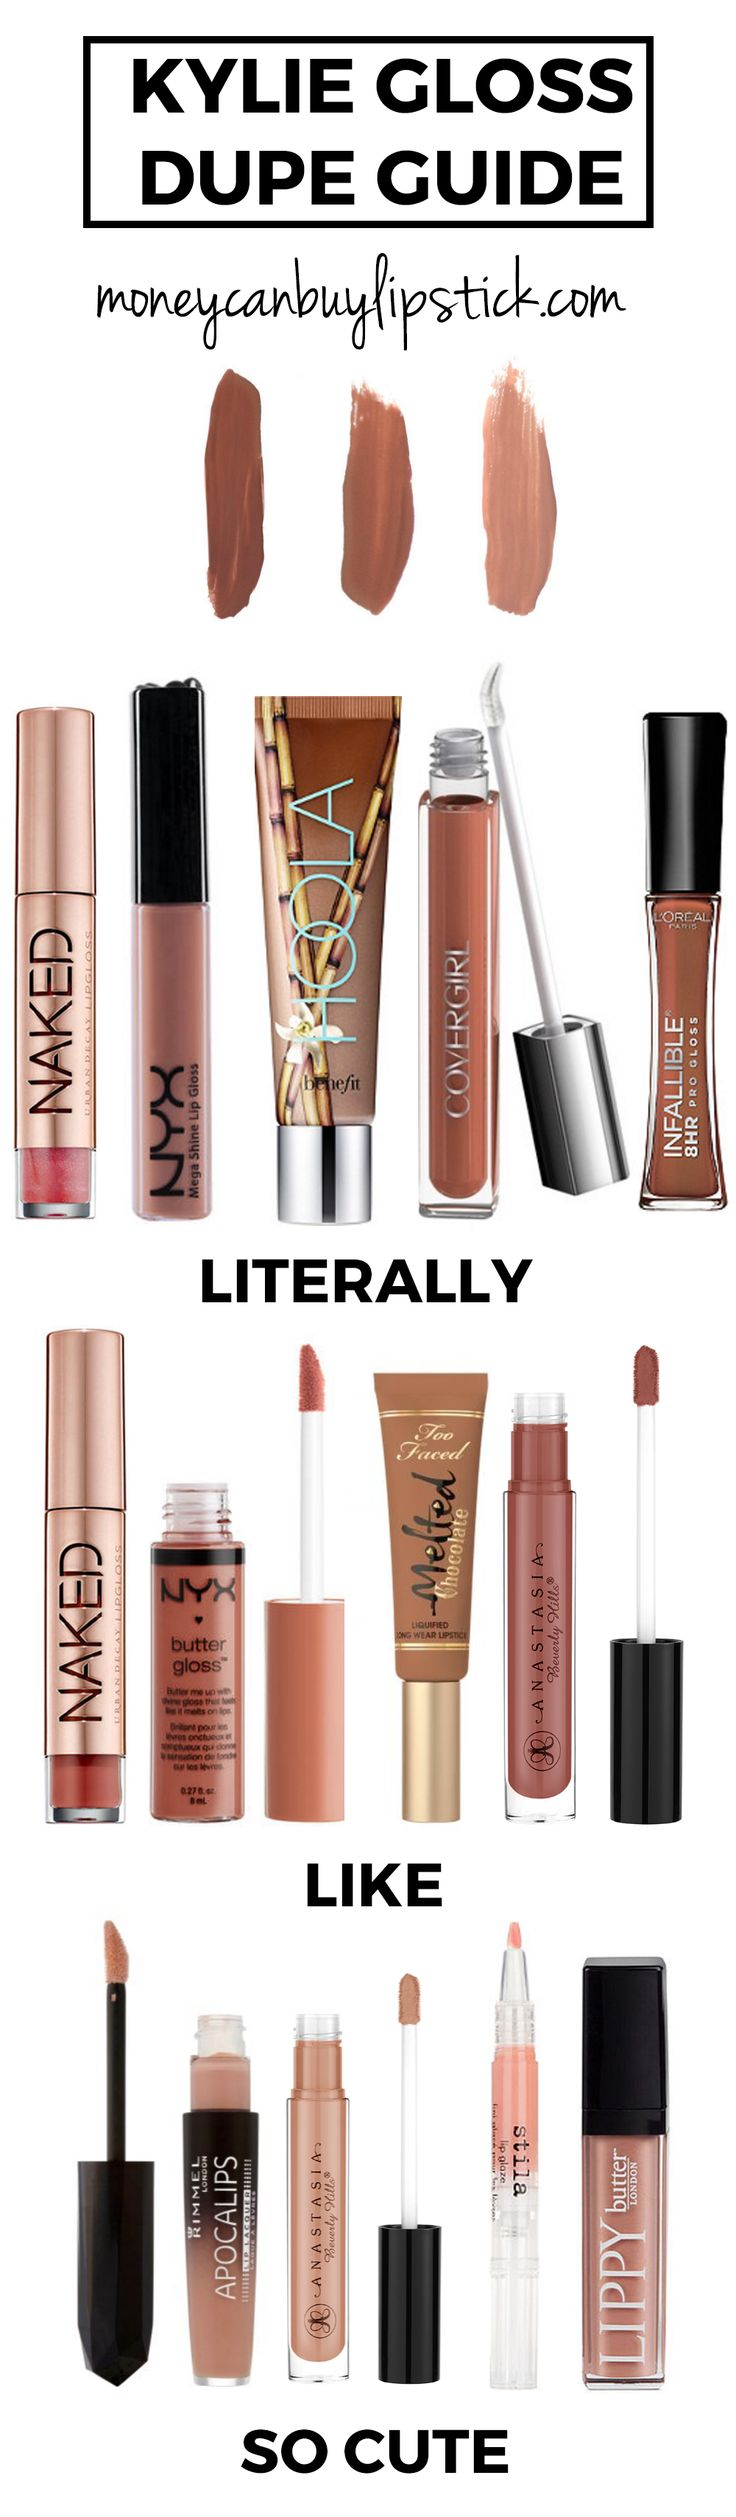 Kylie Cosmetics Gloss Dupe Guide | Money Can Buy Lipstick | Bloglovin'